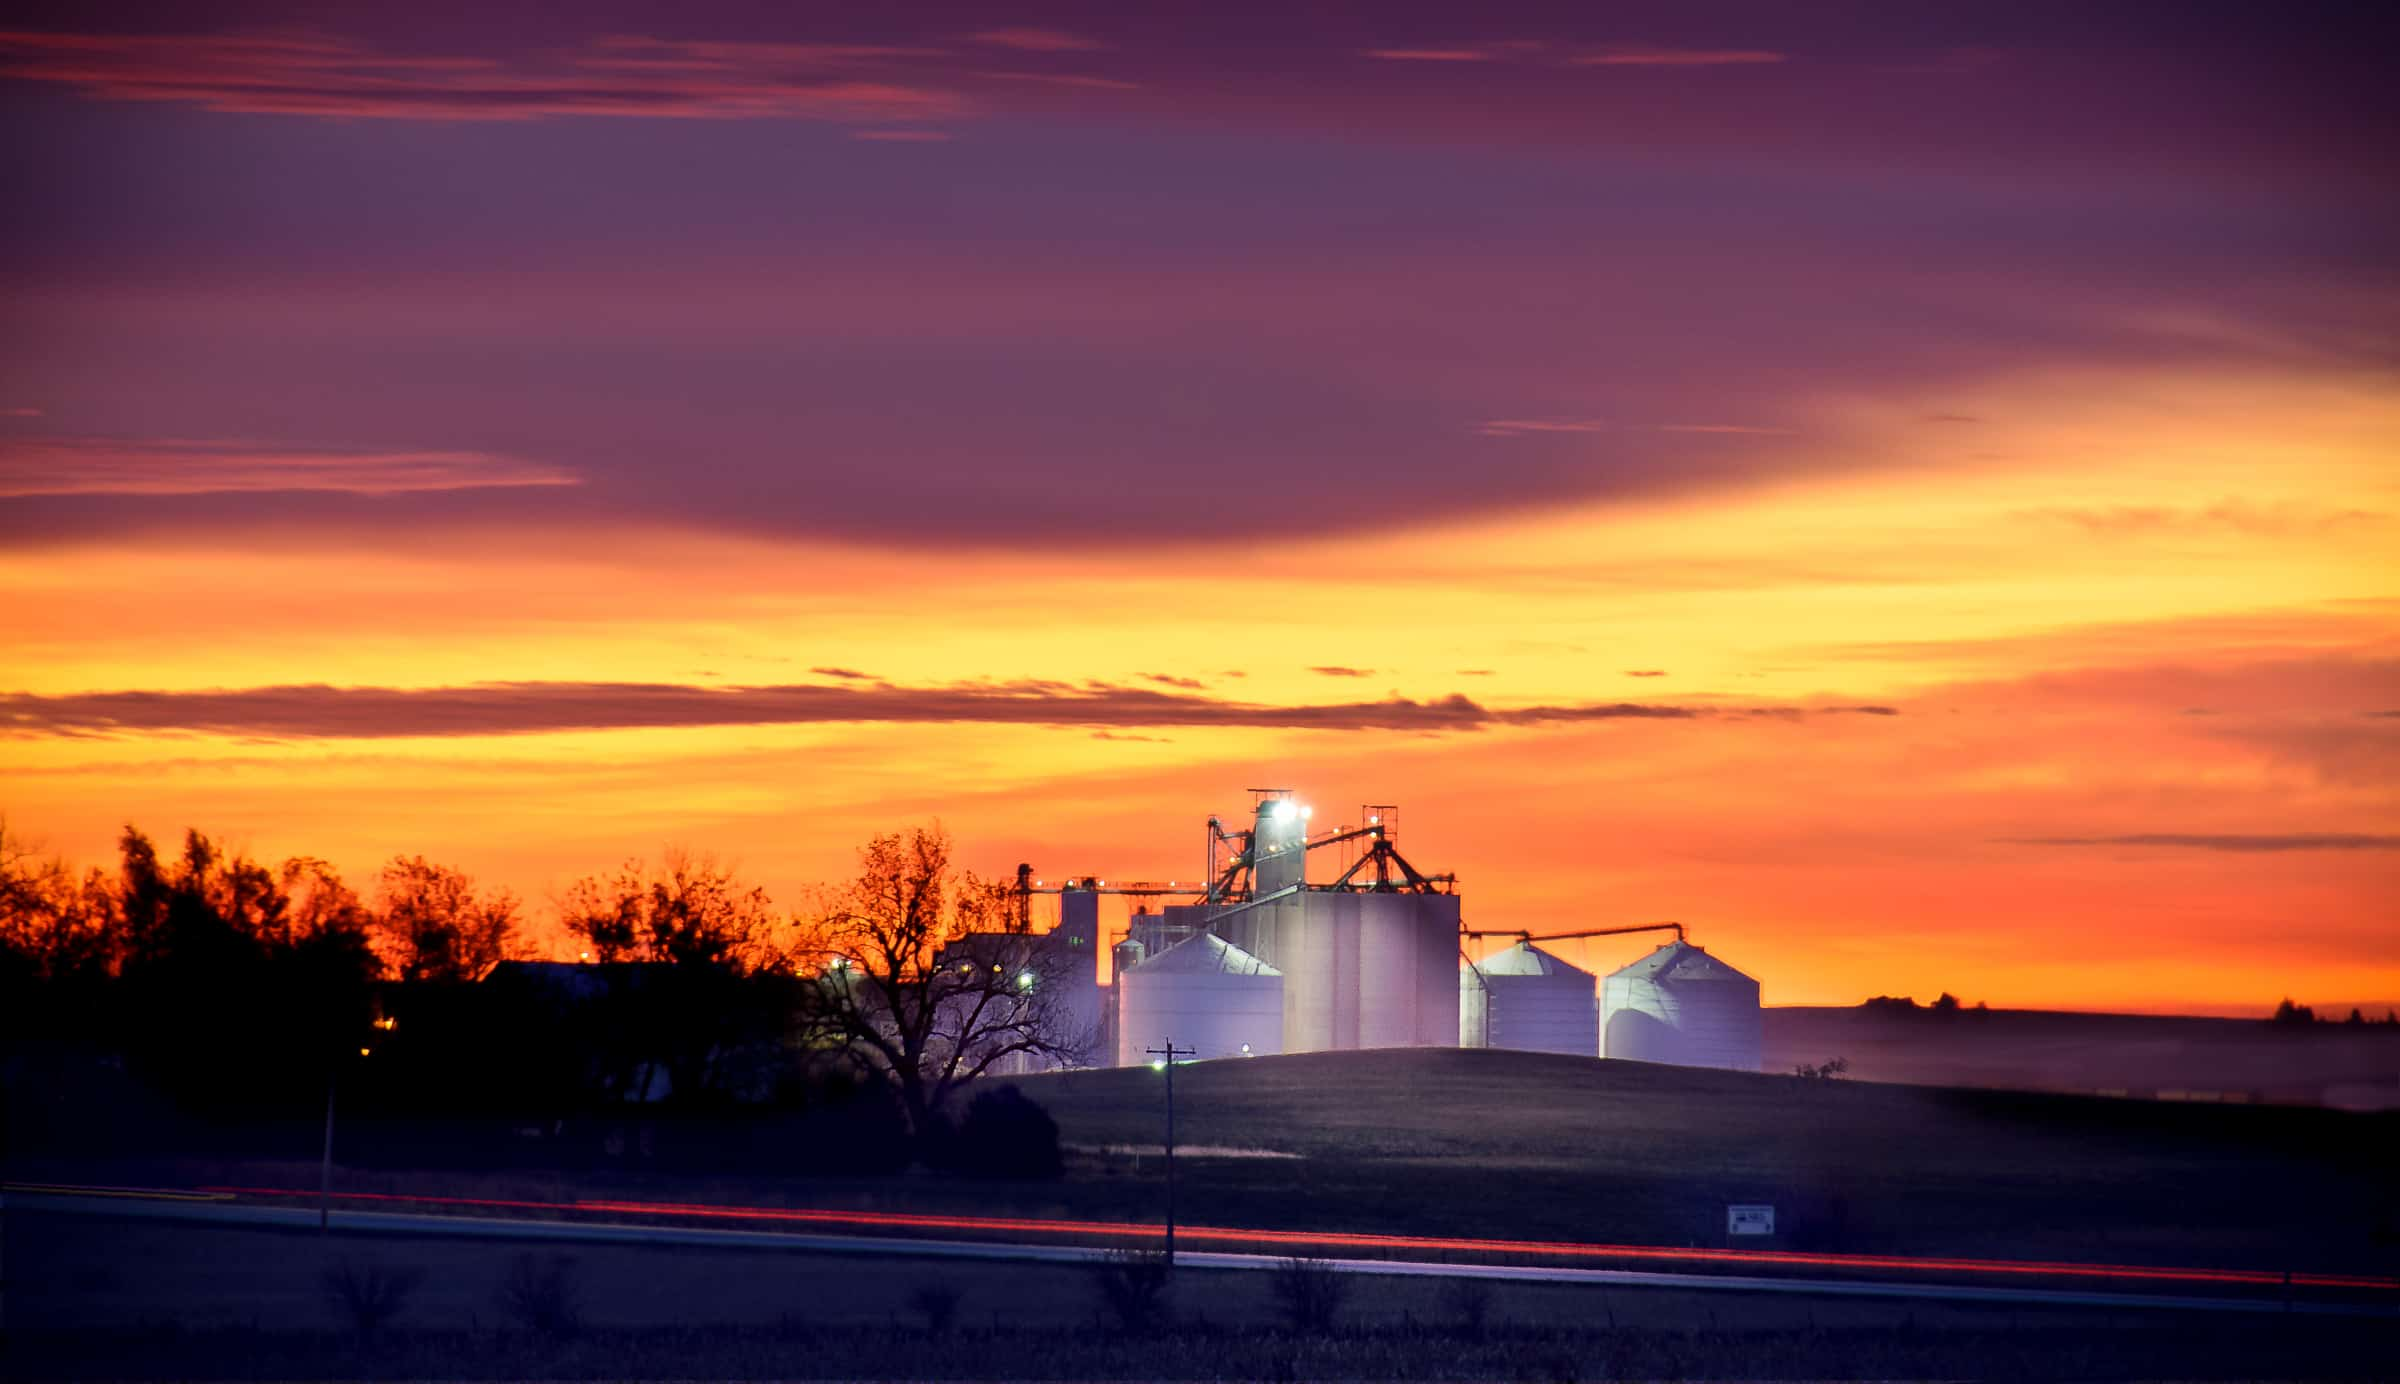 Early morning on grain-storage complex near Glidden, Iowa.